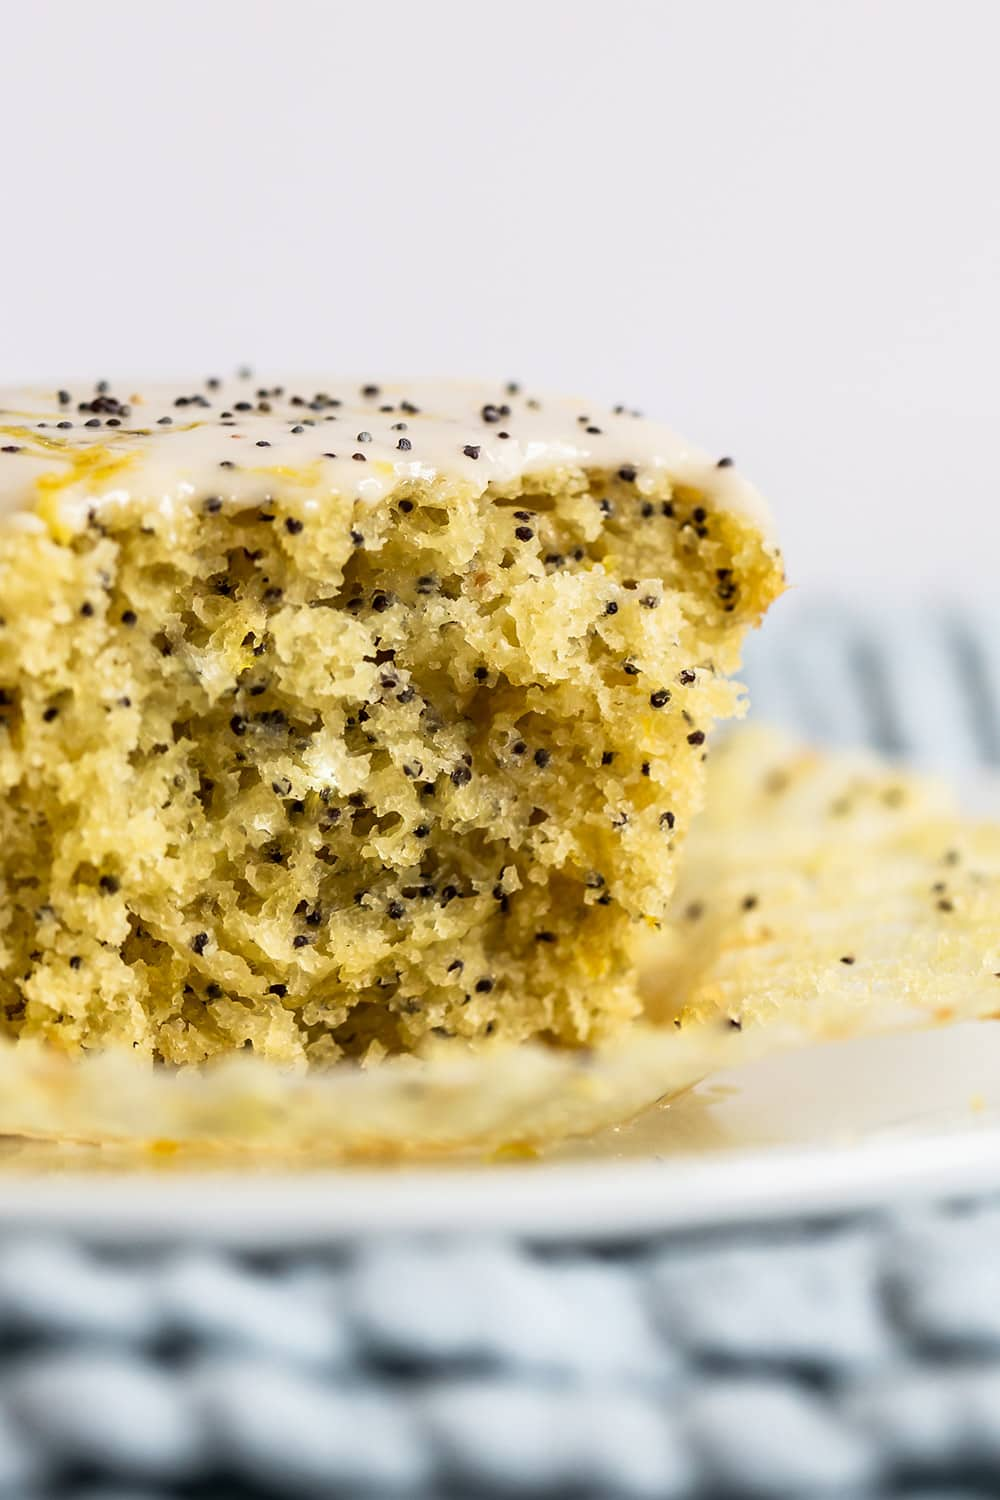 up close look of moist and tender lemon poppyseed muffin interior texture